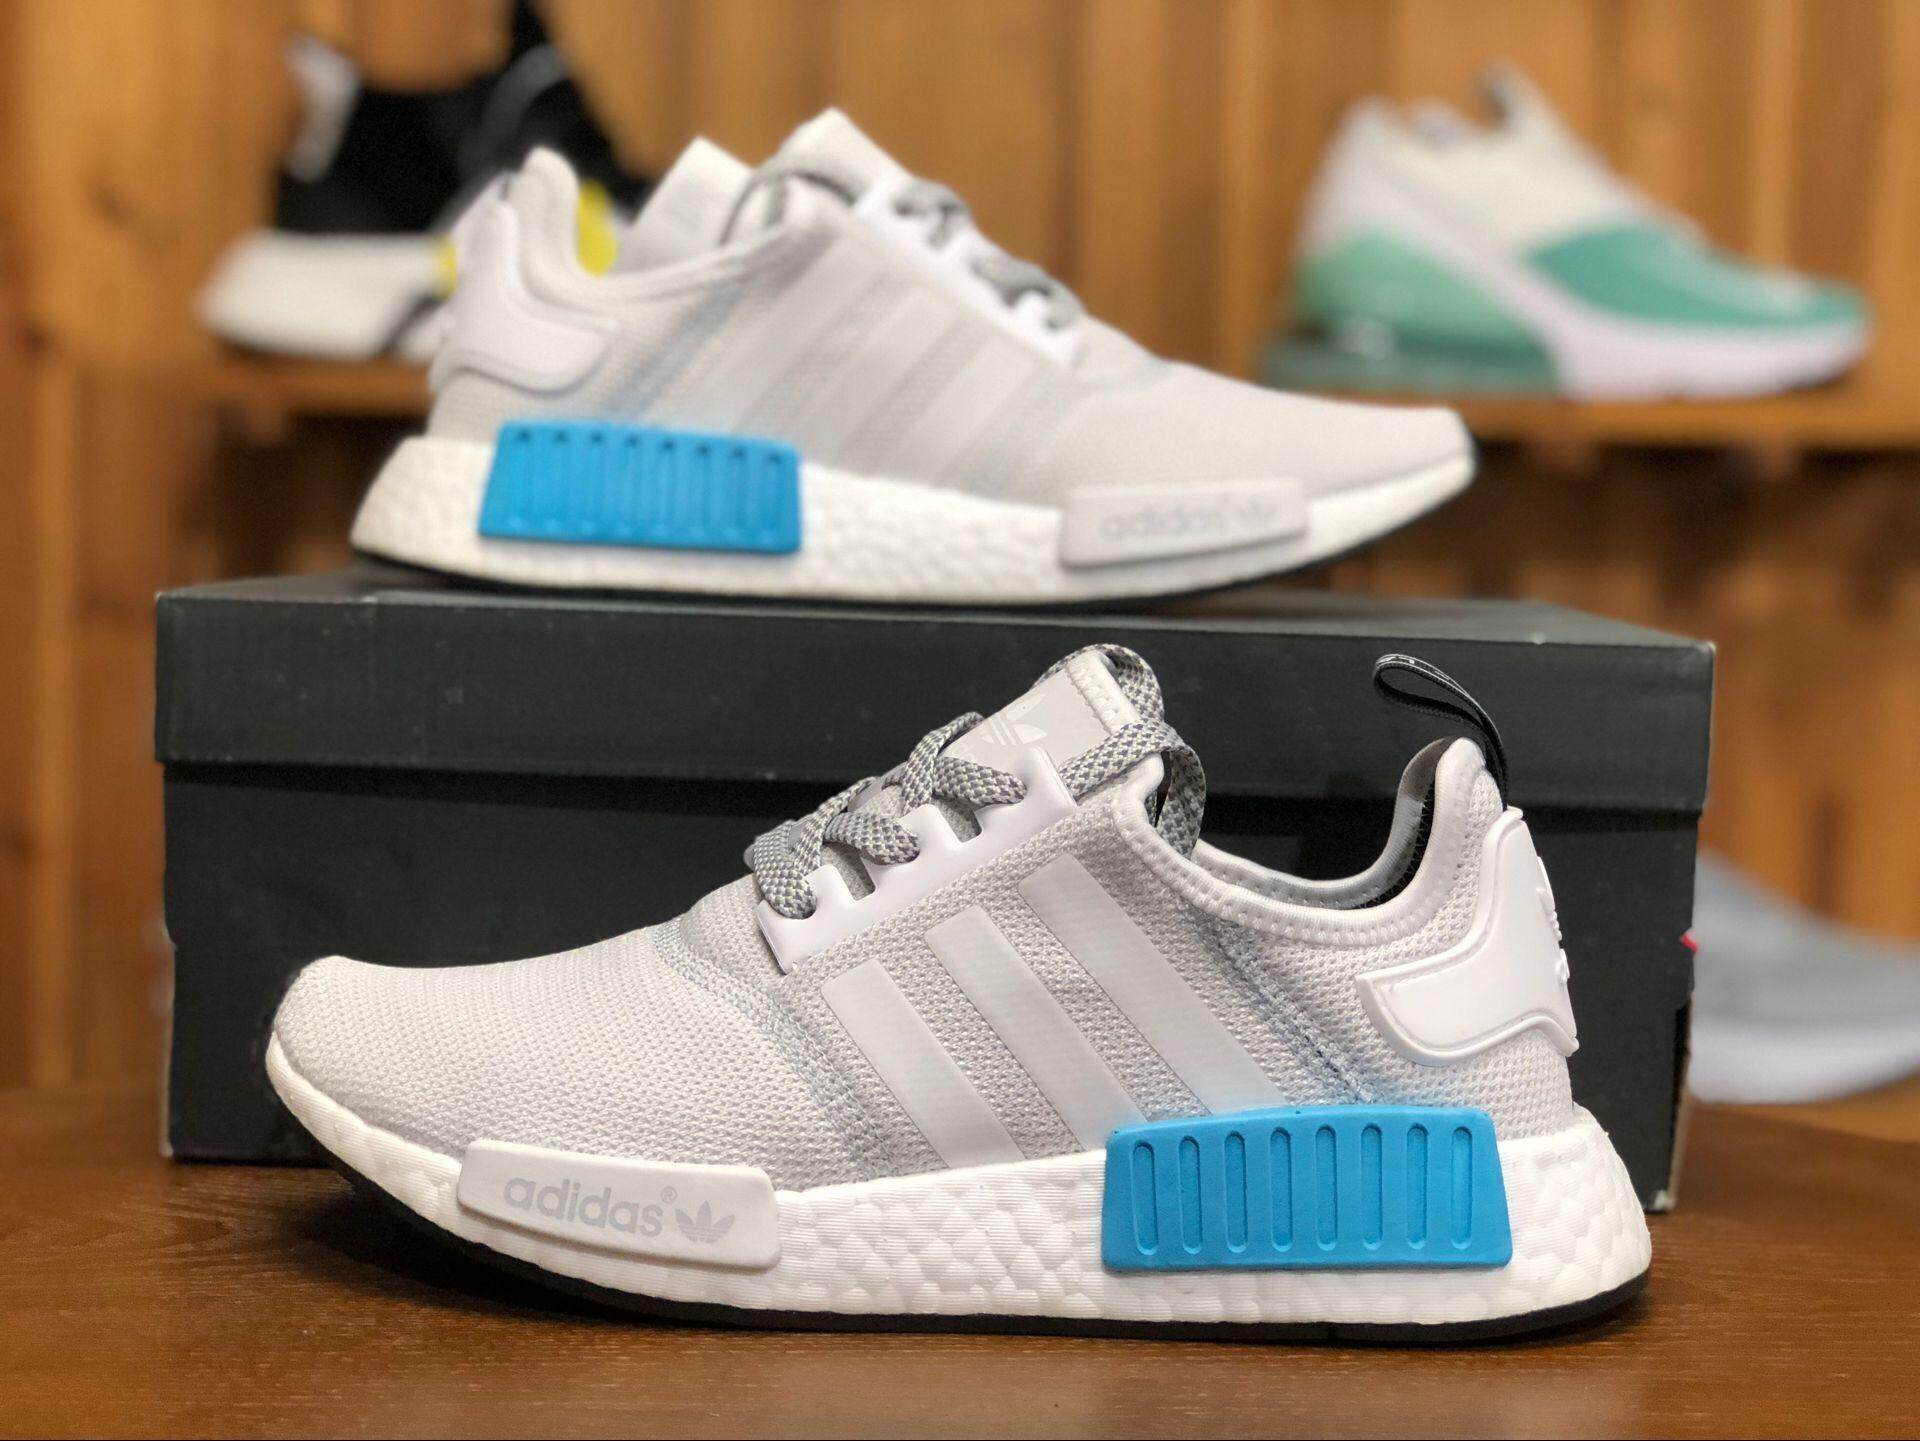 f776342e45f42 Sale ADIDA 2018 NMD  R1 Runner Nomad White Blue S31511 Women and Men  Sneaker 36-